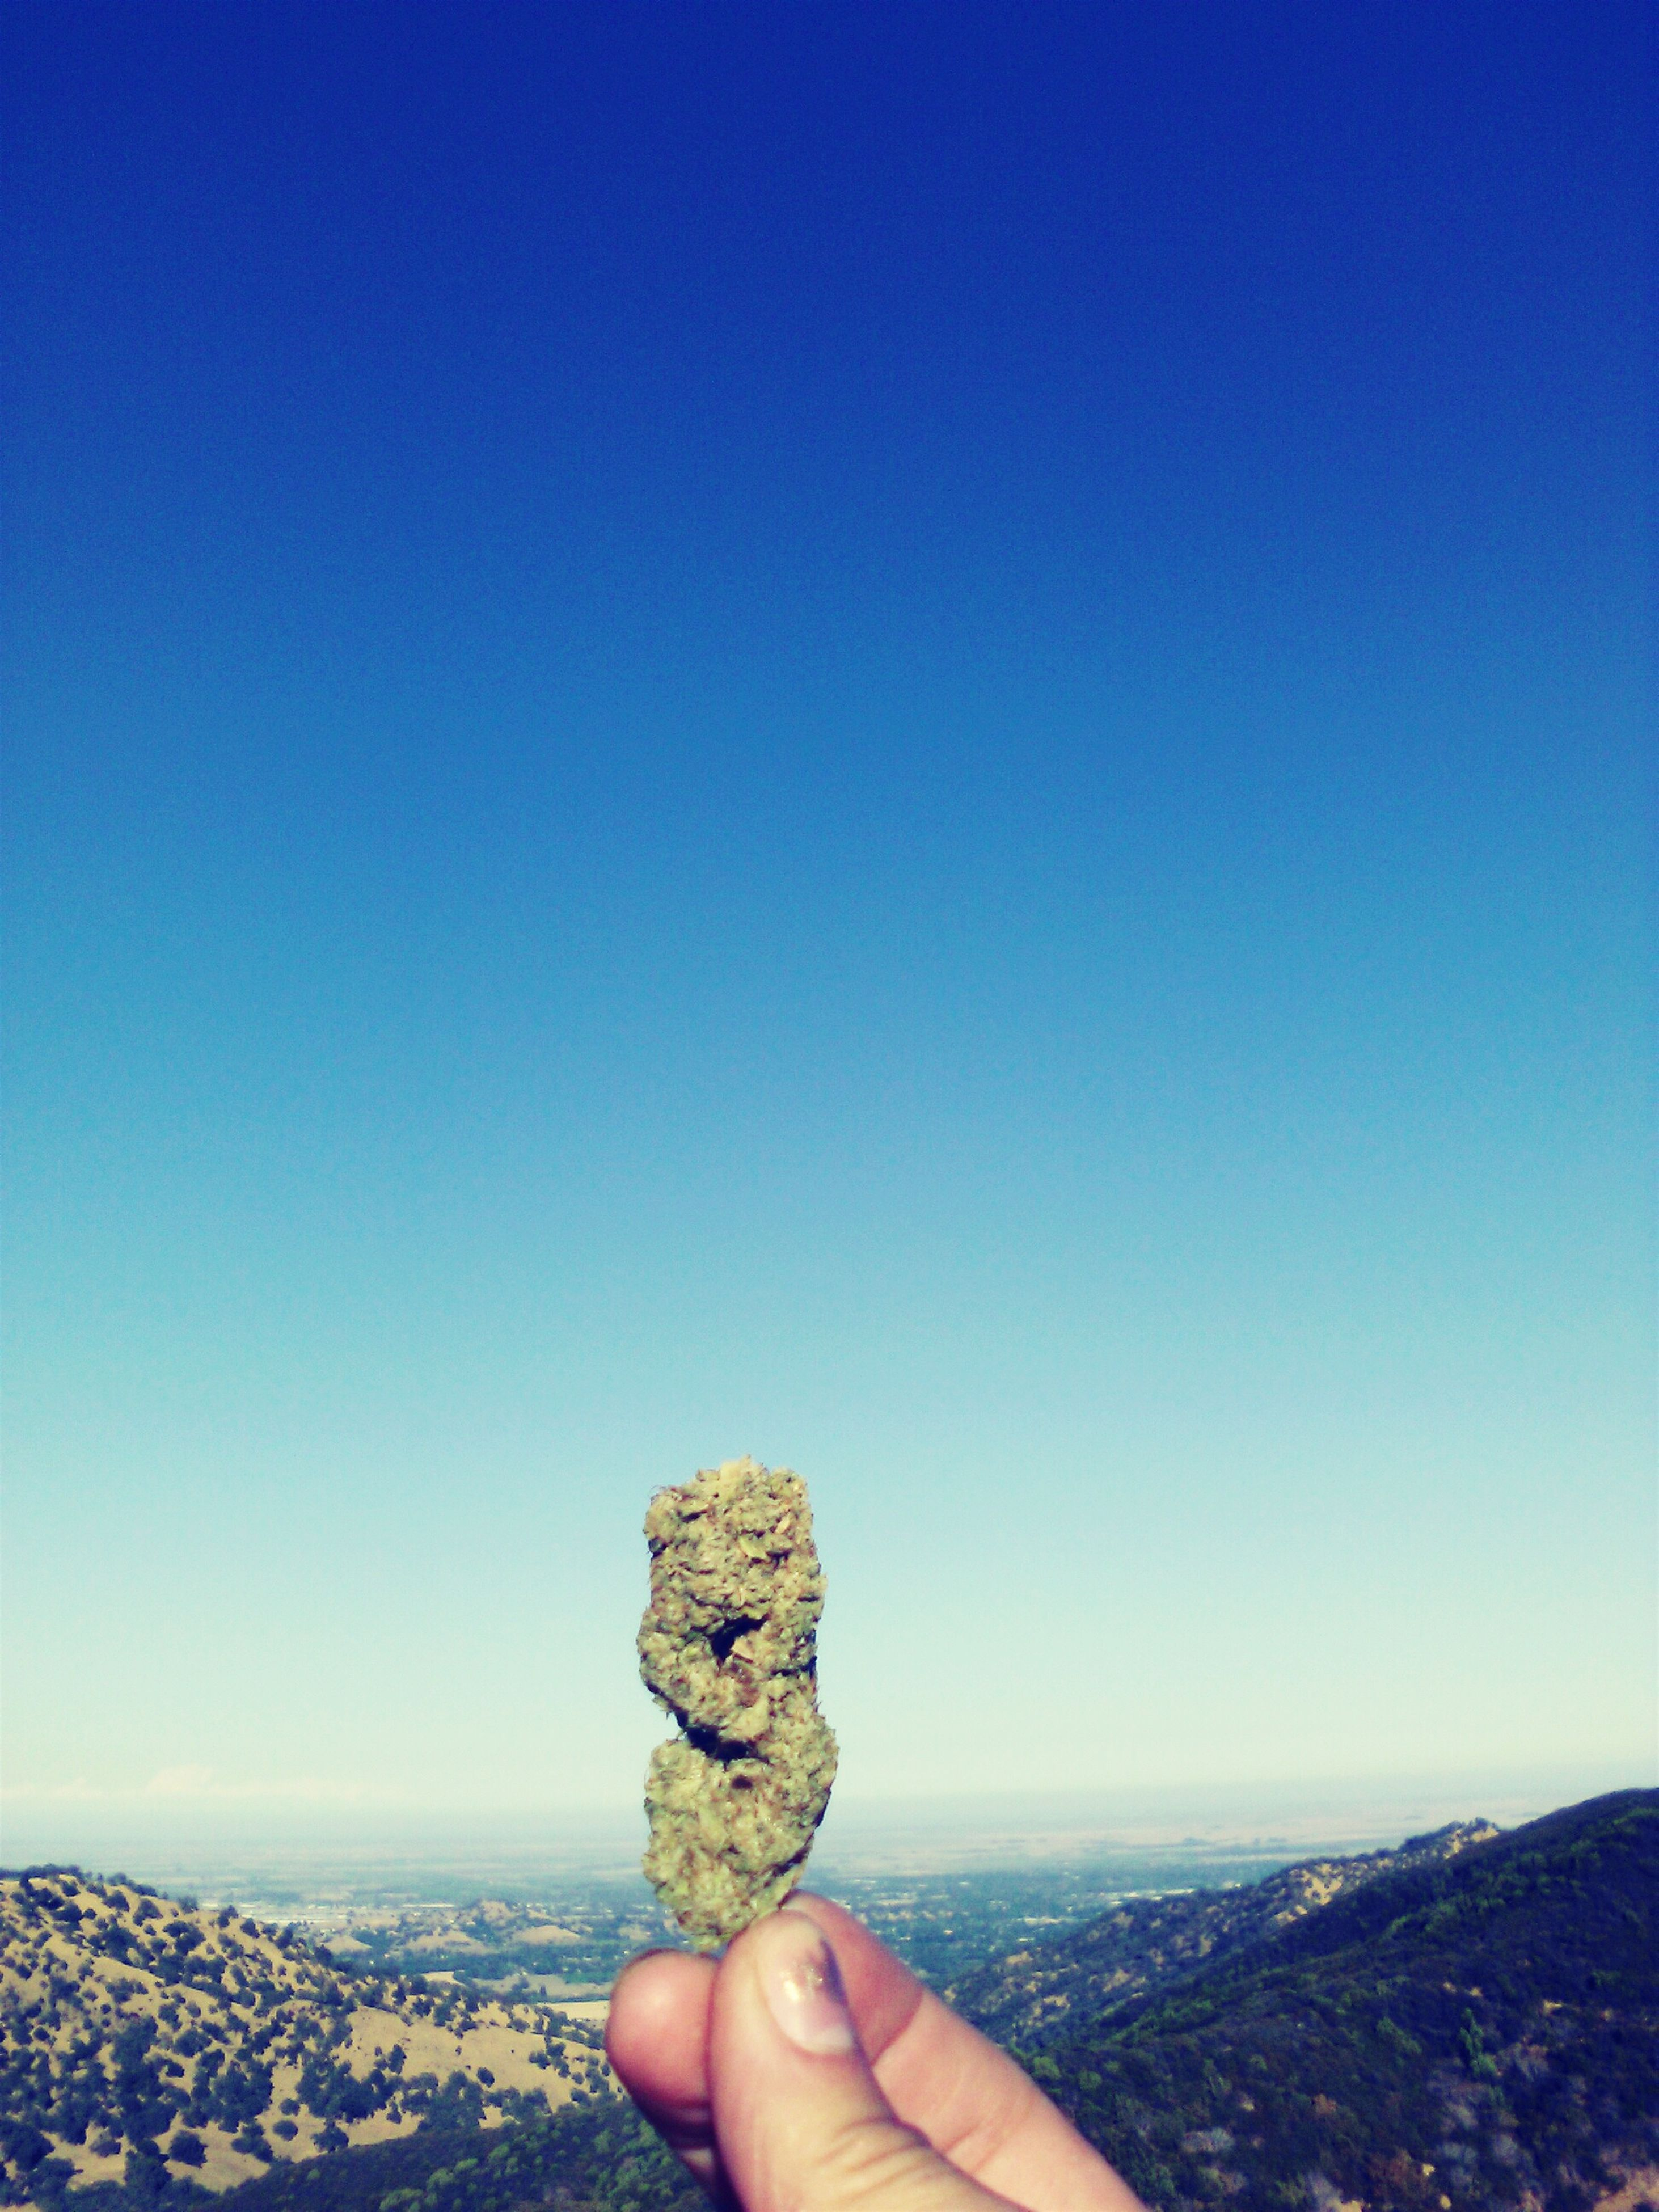 copy space, clear sky, personal perspective, person, blue, part of, lifestyles, leisure activity, cropped, rock - object, holding, human finger, unrecognizable person, day, men, nature, outdoors